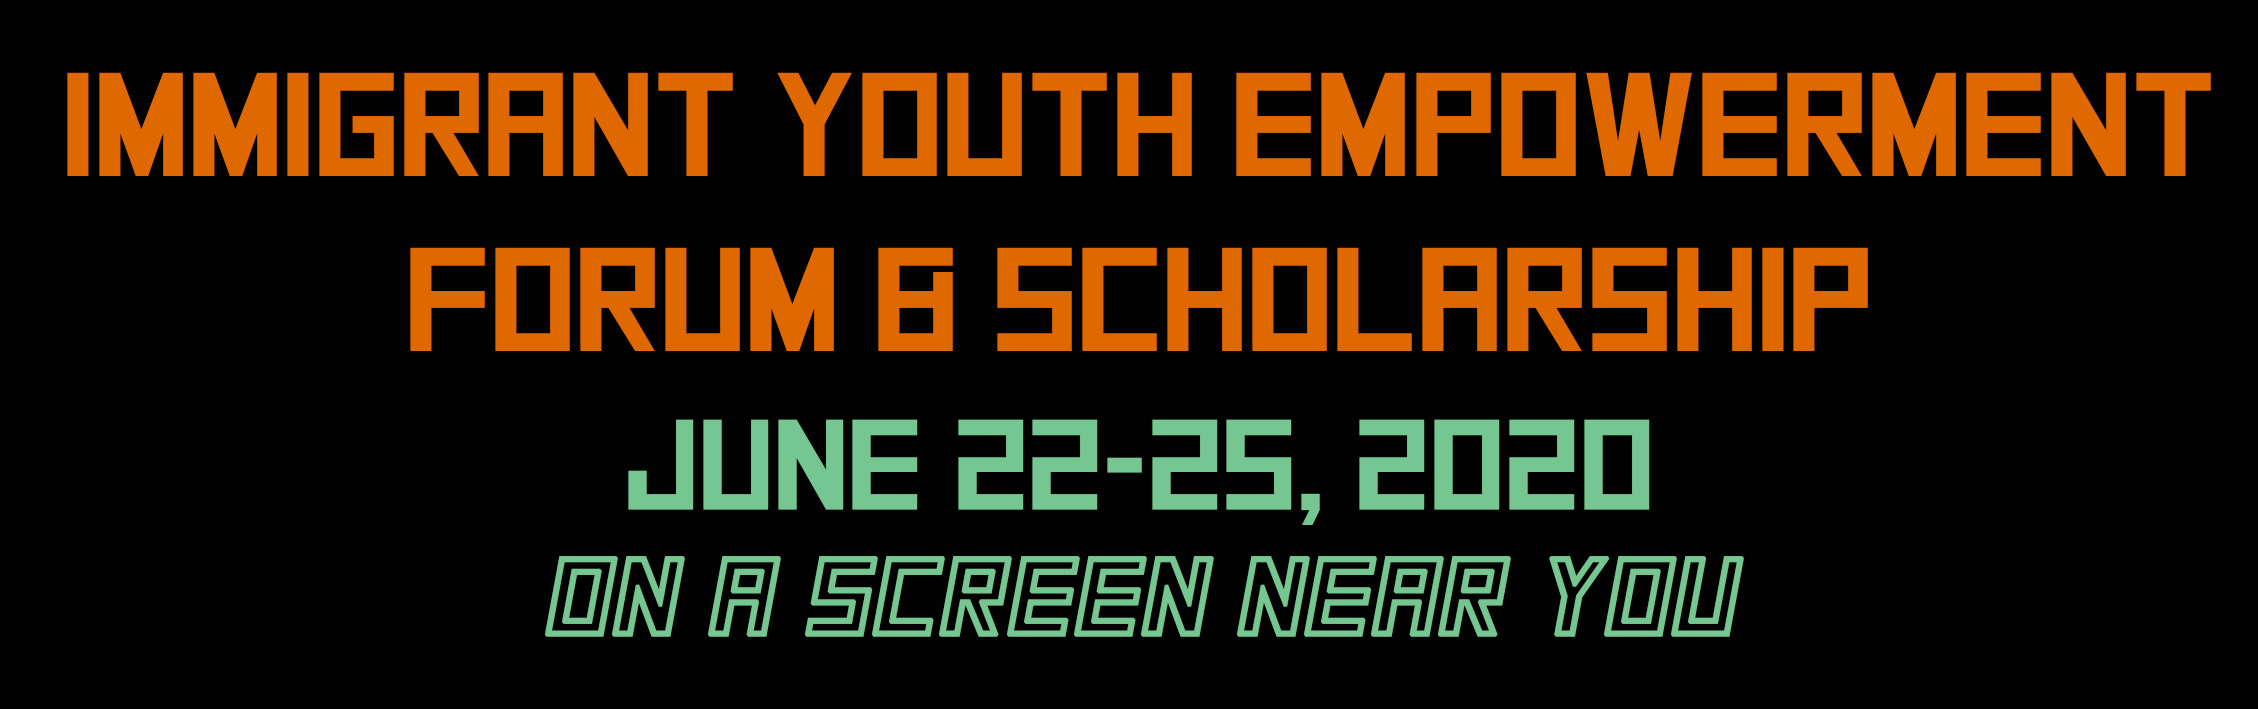 immigrant youth forum header